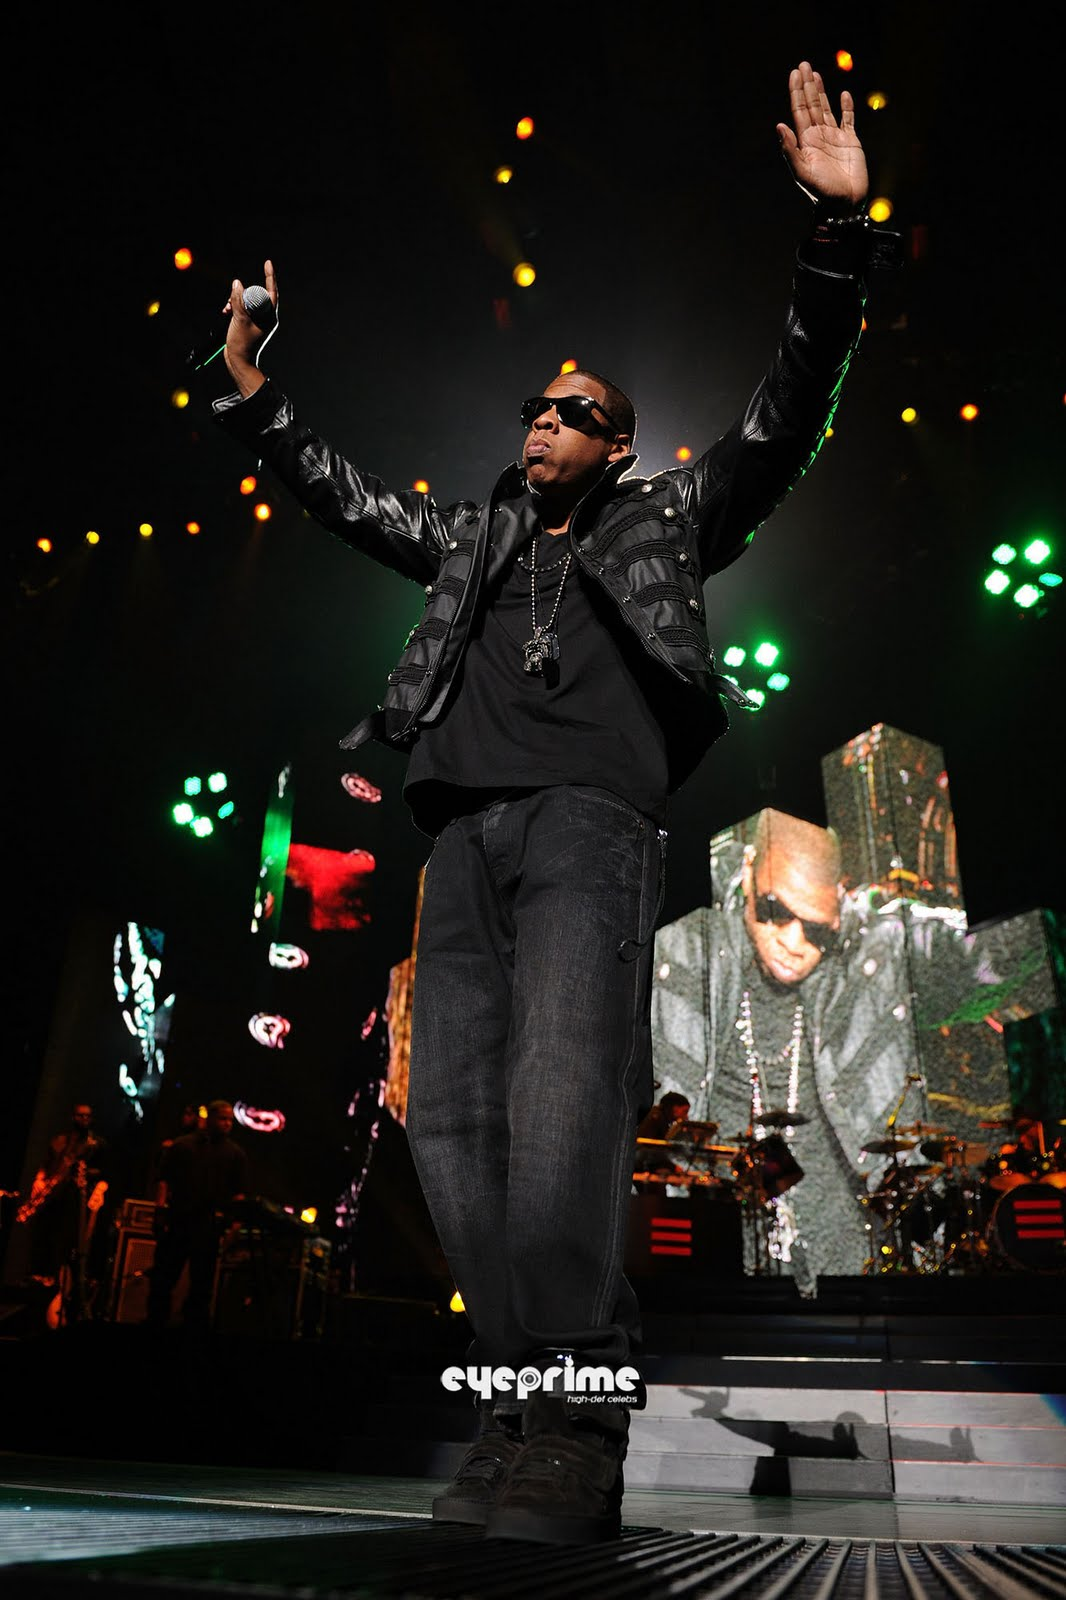 shawn corey carter jayz Born shawn corey carter in new york city on december 4, 1969, jay-z grew up  in brooklyn's drug-infested marcy projects he used rap as an.